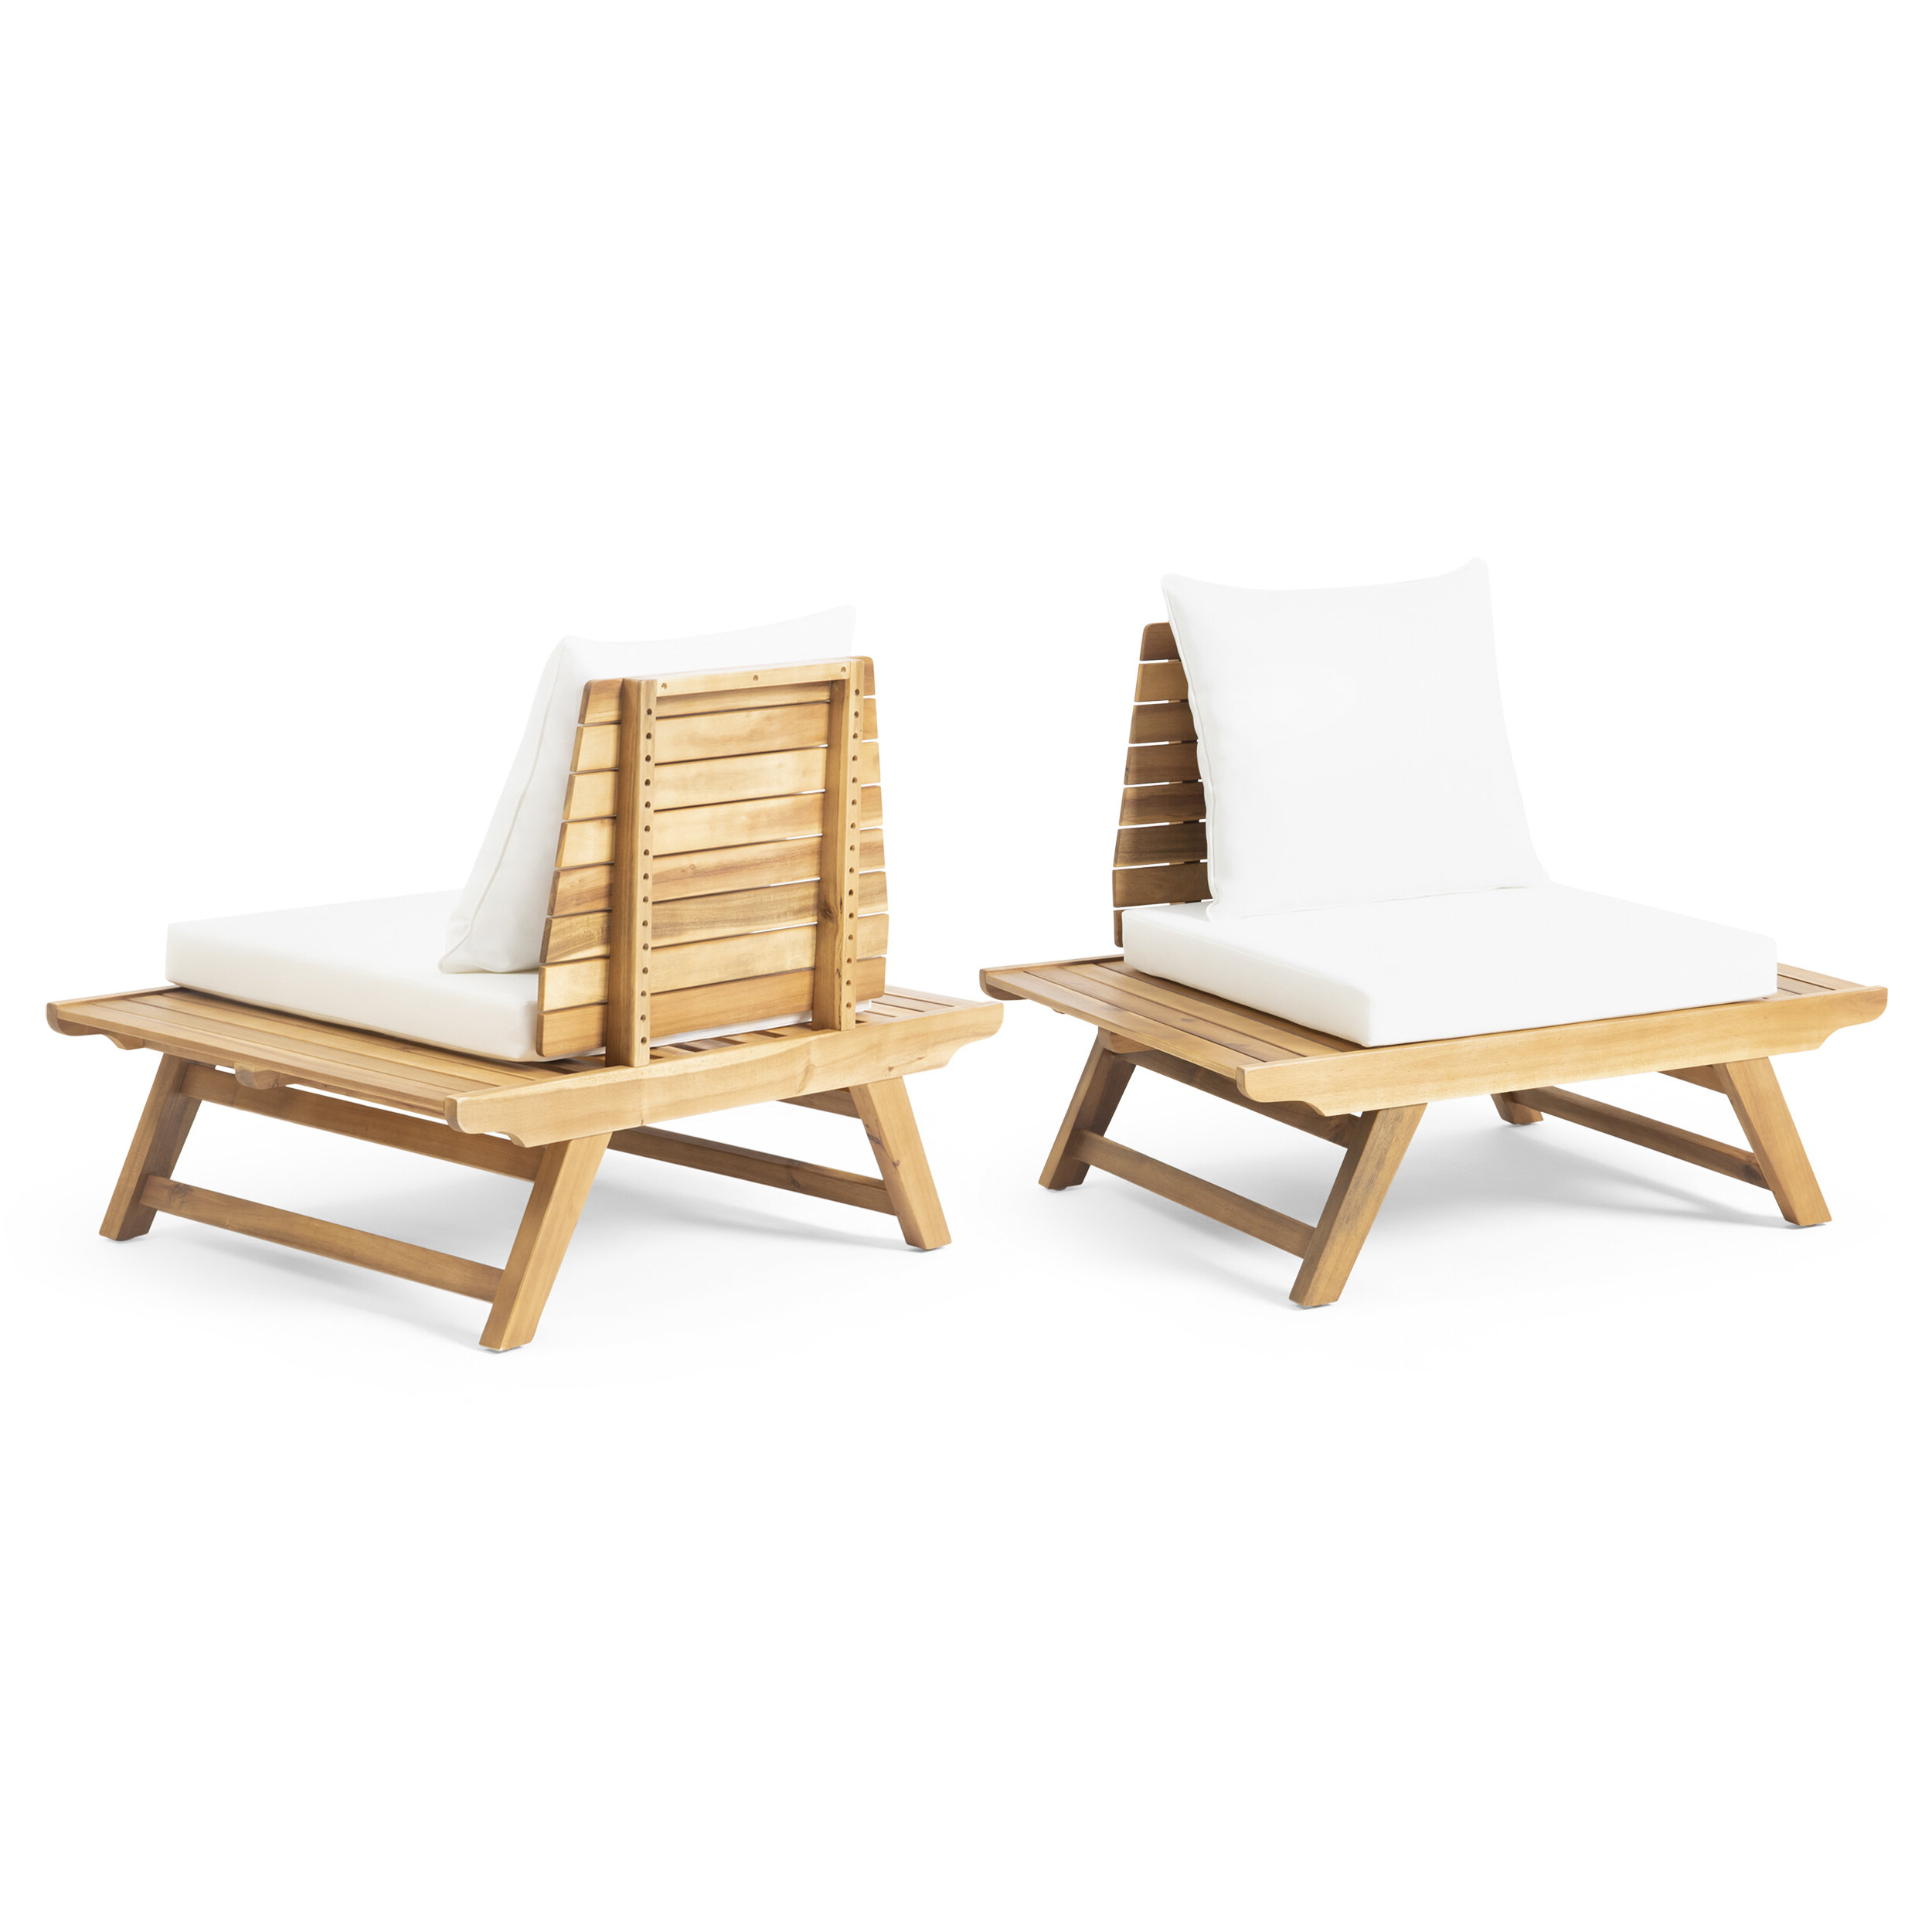 Preferred Bullock Outdoor Wooden Loveseats With Cushions Inside Bullock Outdoor Patio Chair With Cushions (View 8 of 20)